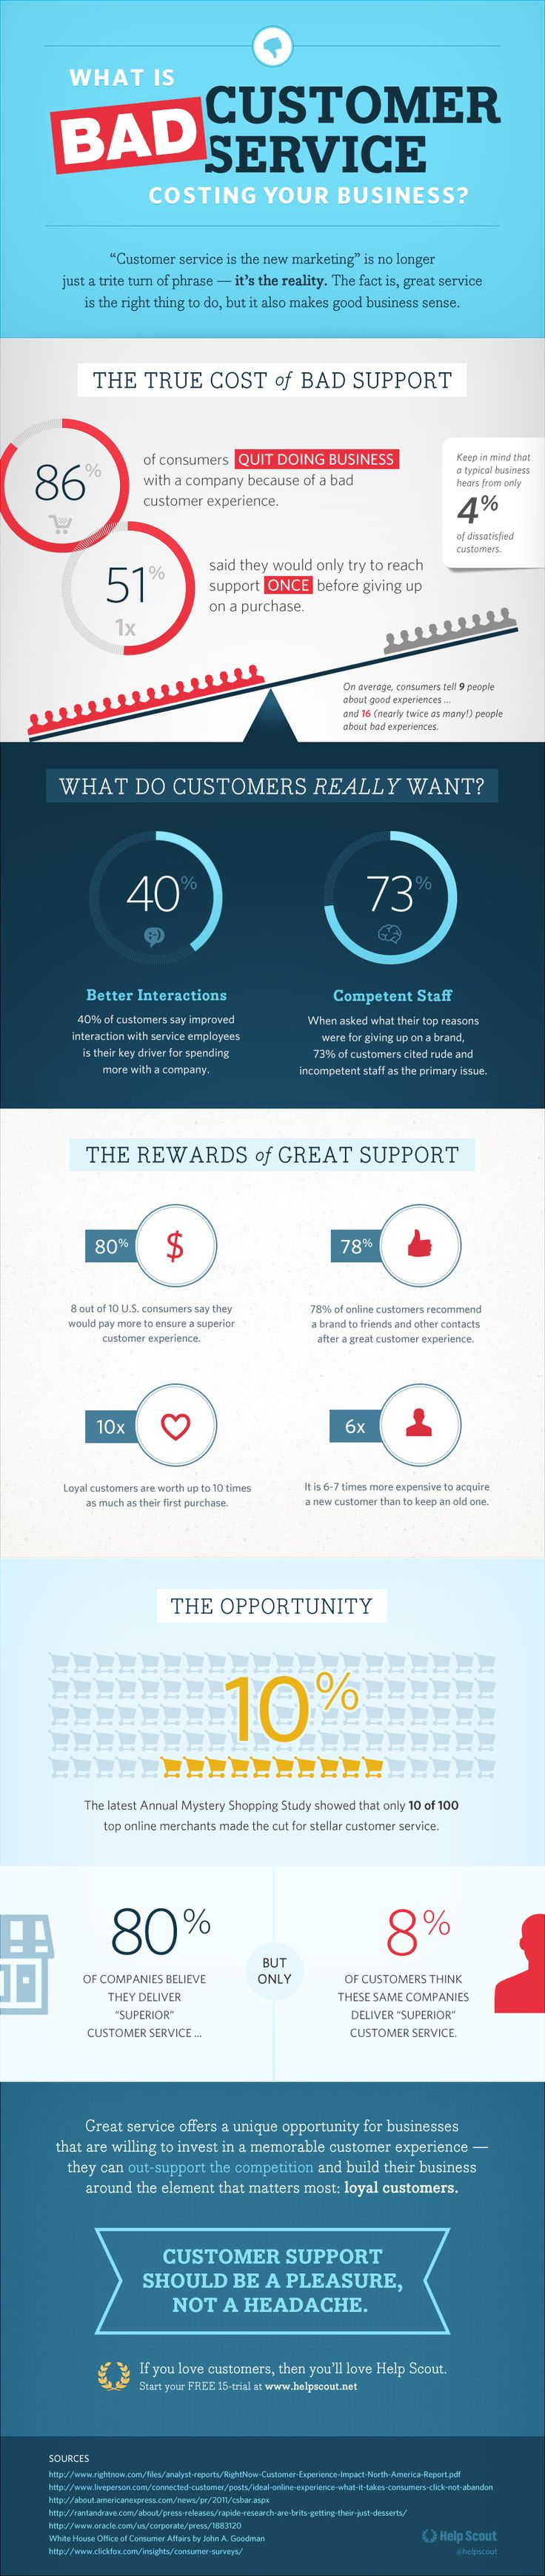 Bad customer service infographic  It's like this: Bad customer service pisses people off and they tell the world about it. Good customer service: Meh.  Awesome customer service (truly outstanding) may have the same effect as bad customer service, some times.